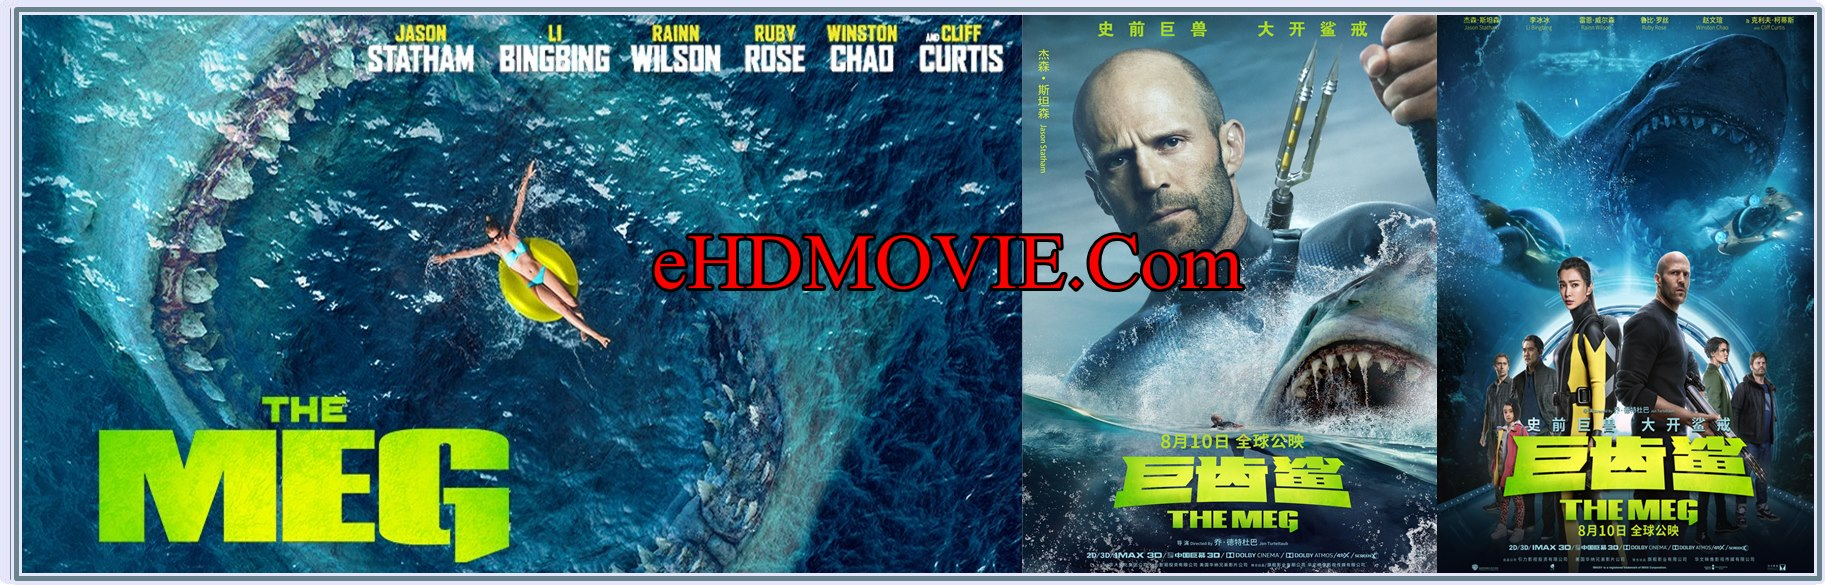 The Meg 2018 Full Movie Dual Audio [Hindi – English] 1080p - HEVC - 720p - 480p ORG BRRip 400MB - 550MB - 1GB - 2GB ESubs Free Download